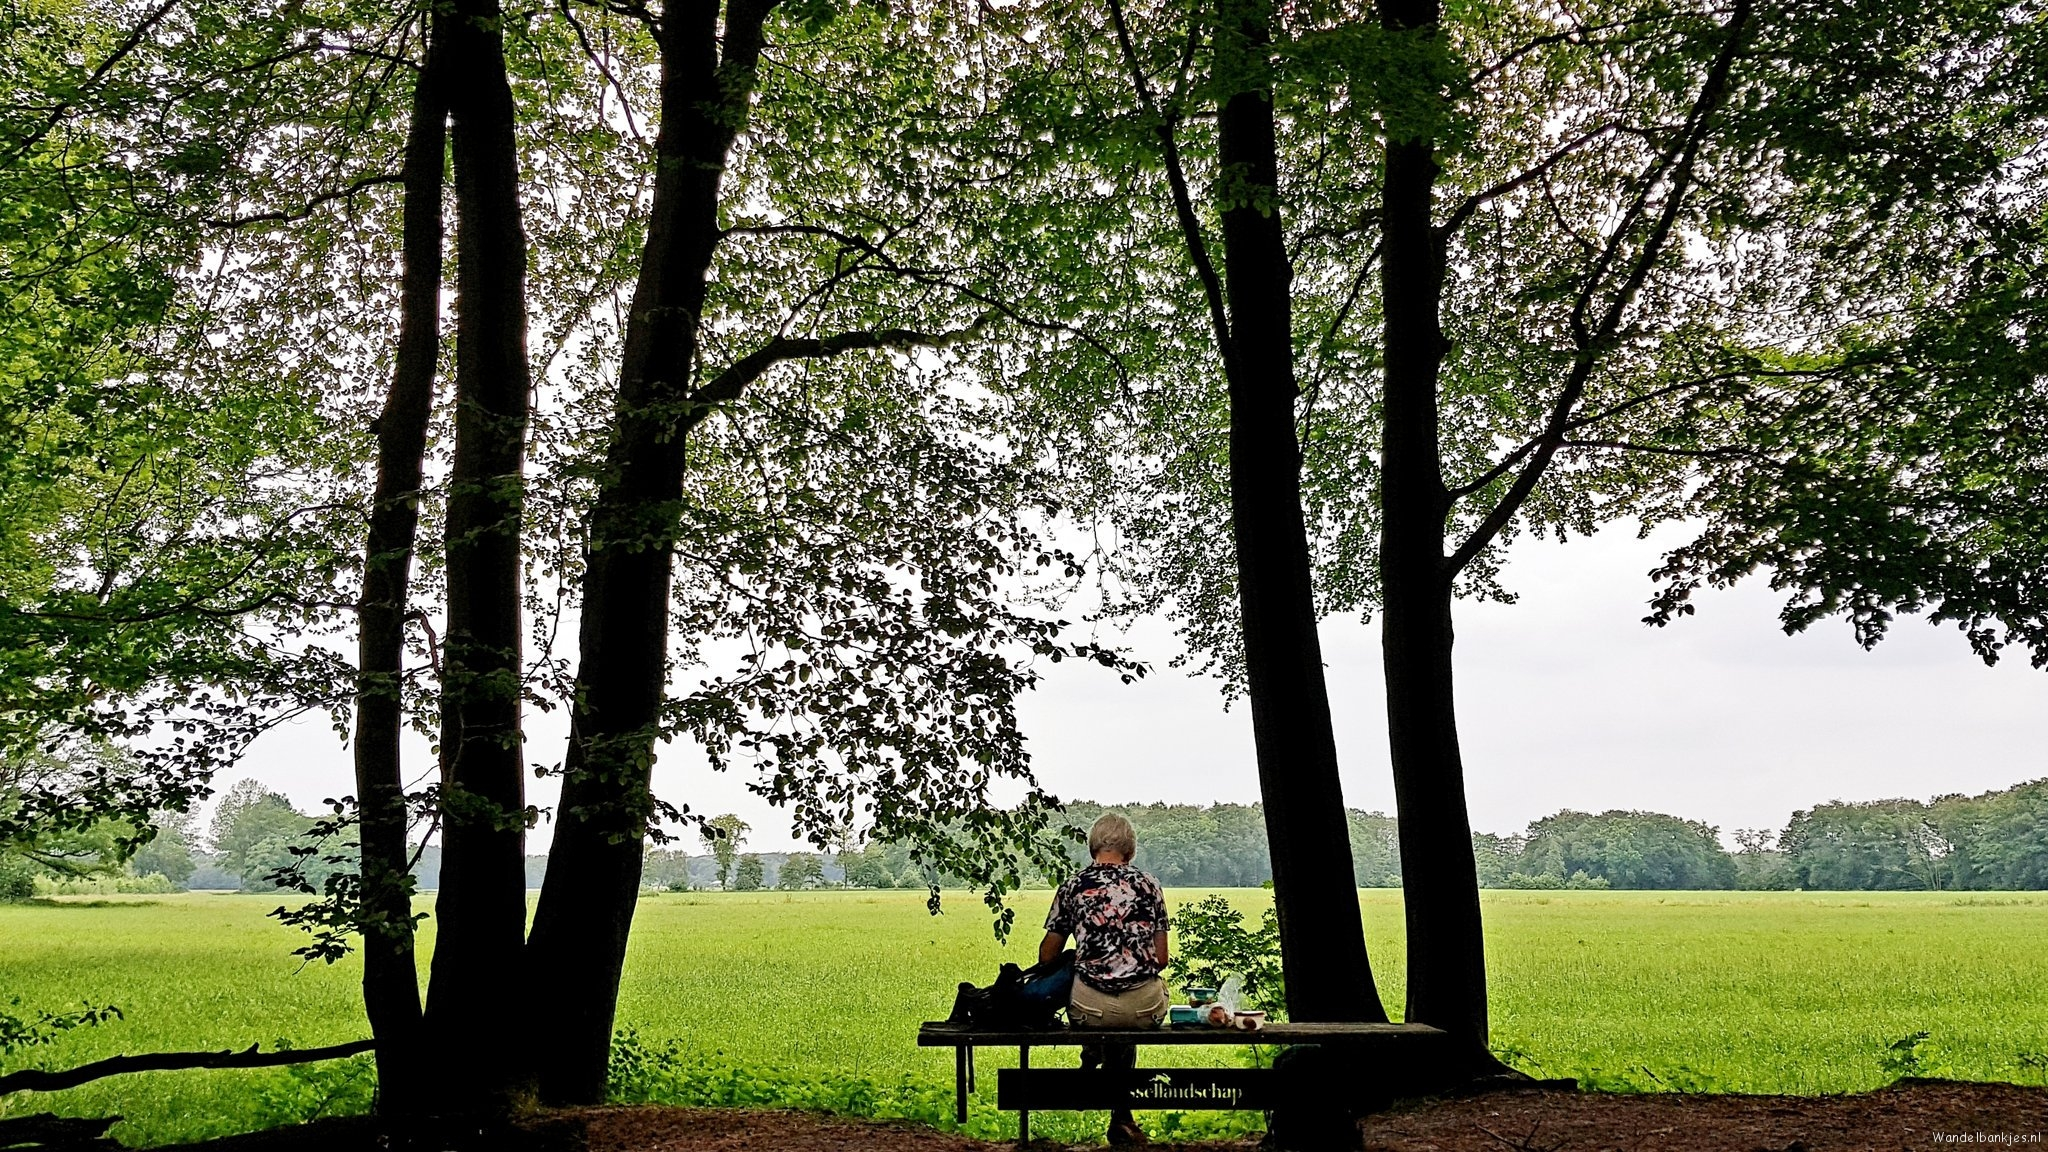 rt-wolfswandelplan-aan-de-rand-van-landgoed-de-kranenkamp-surroundings-diepenveen-walking-benches-https-t-co-xfve710ogi